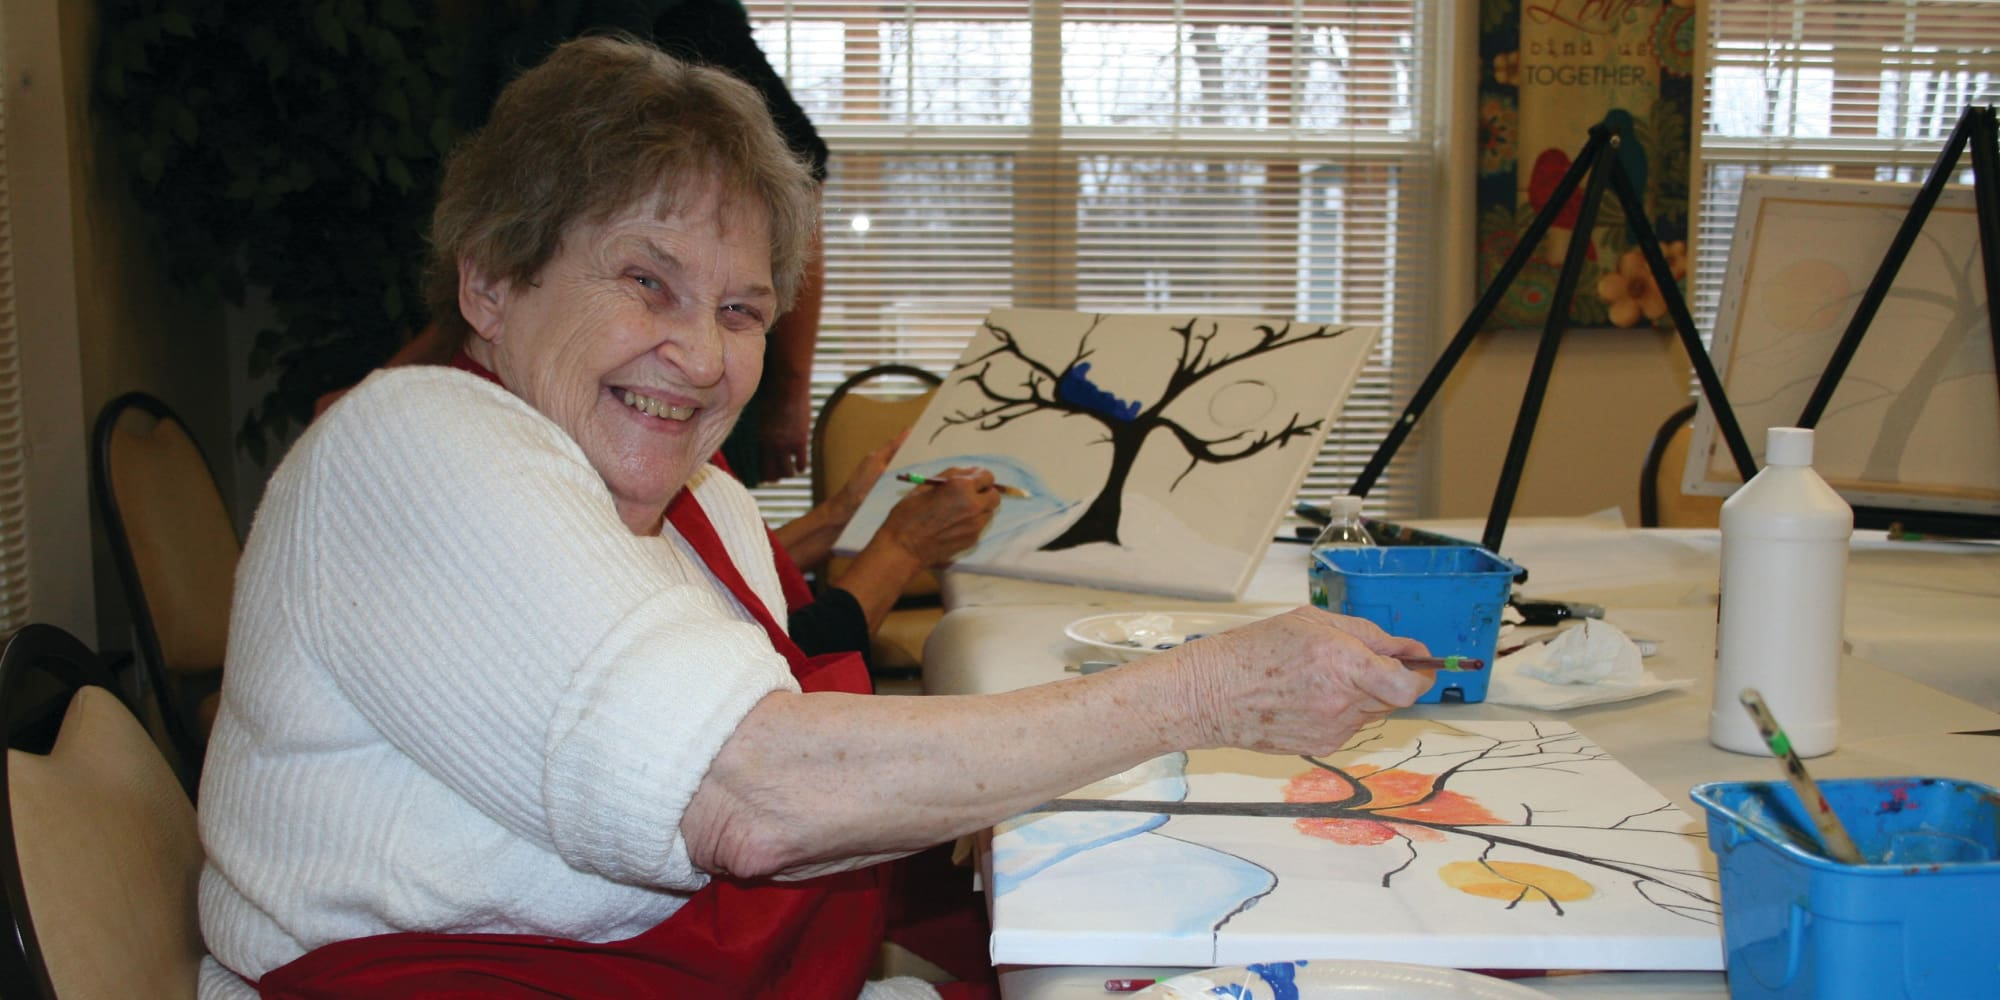 A resident painting at Mulberry Gardens Memory Care in Munroe Falls, Ohio